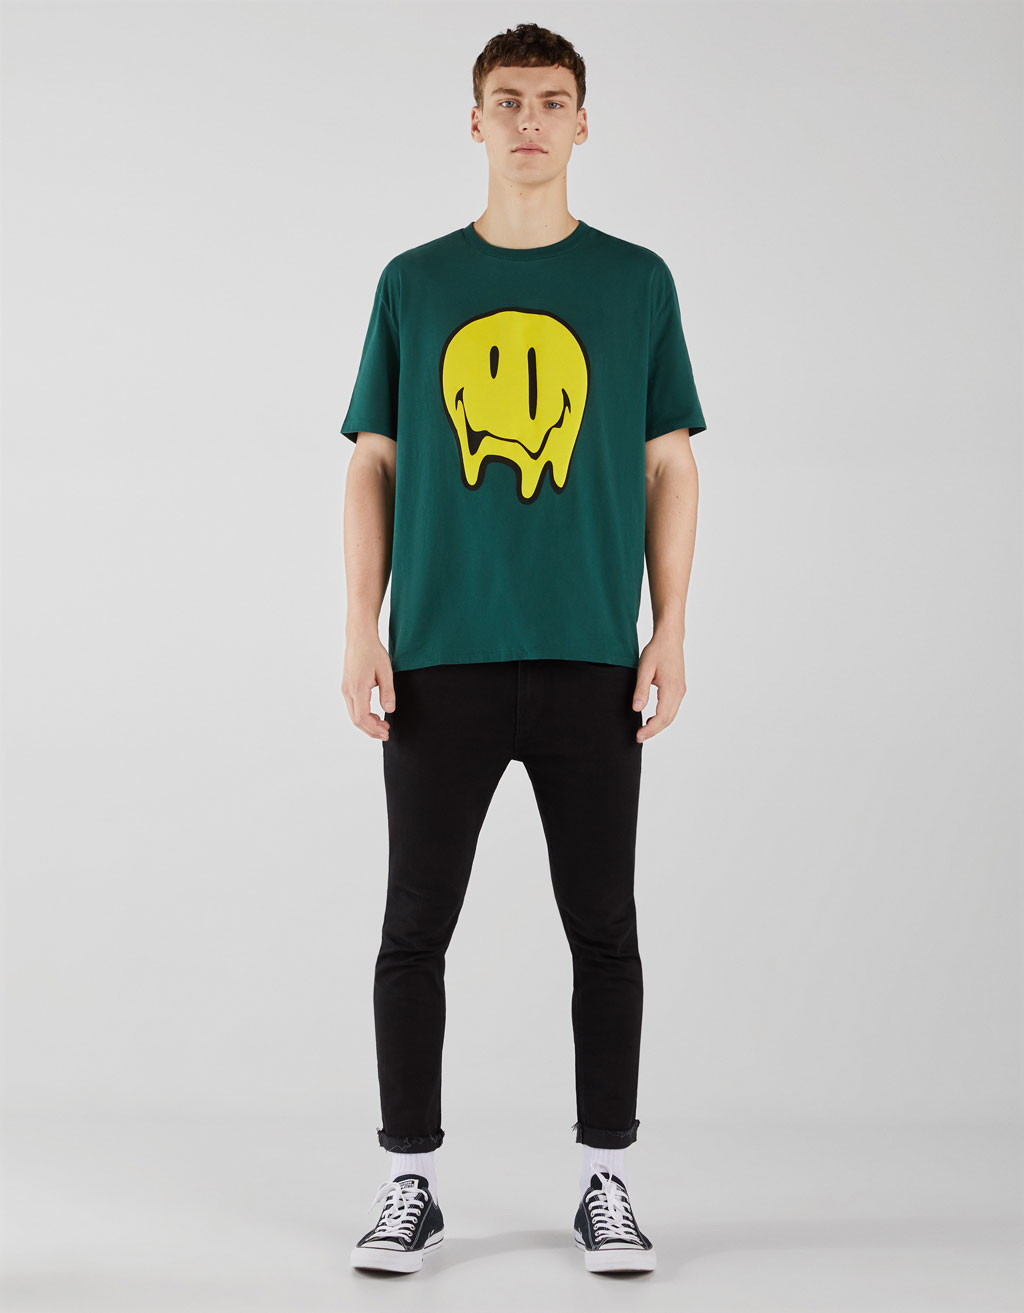 Shirt mit Smiley-Print